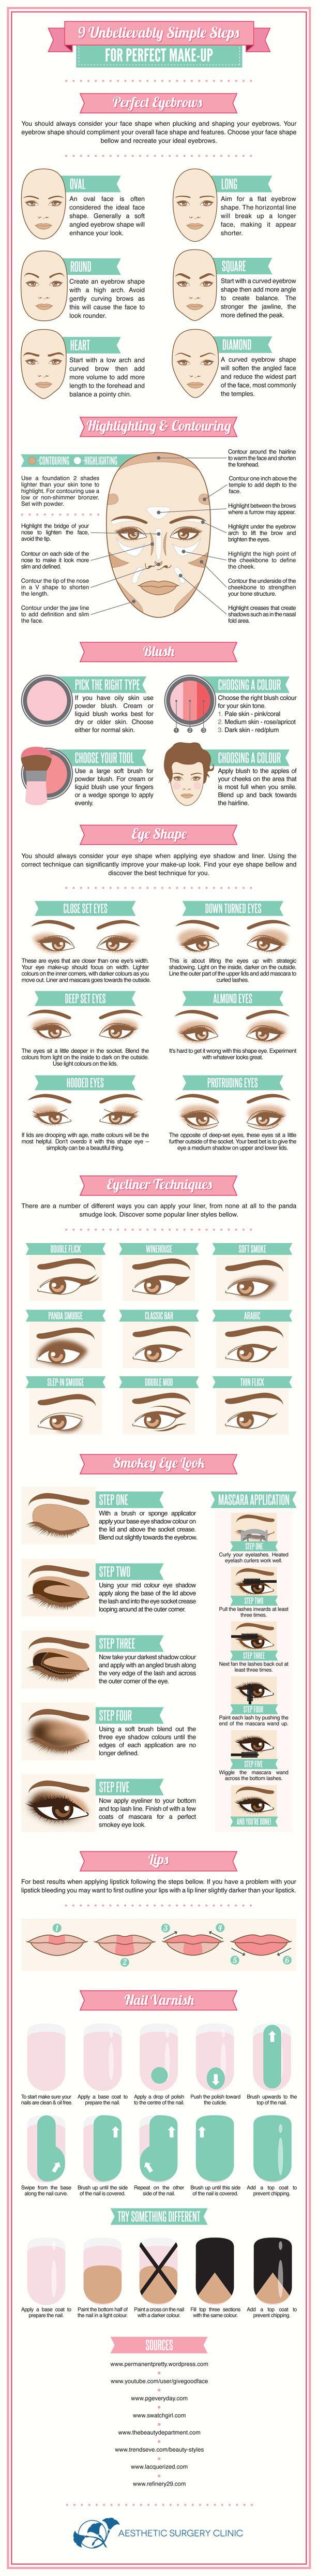 Conseils pour réussir le maquillage du visage, morphologie, colorimétrie, yuex, lèvres, blush, Infographic helps you master the perfect make-up - Beauty - Stylist Magazine